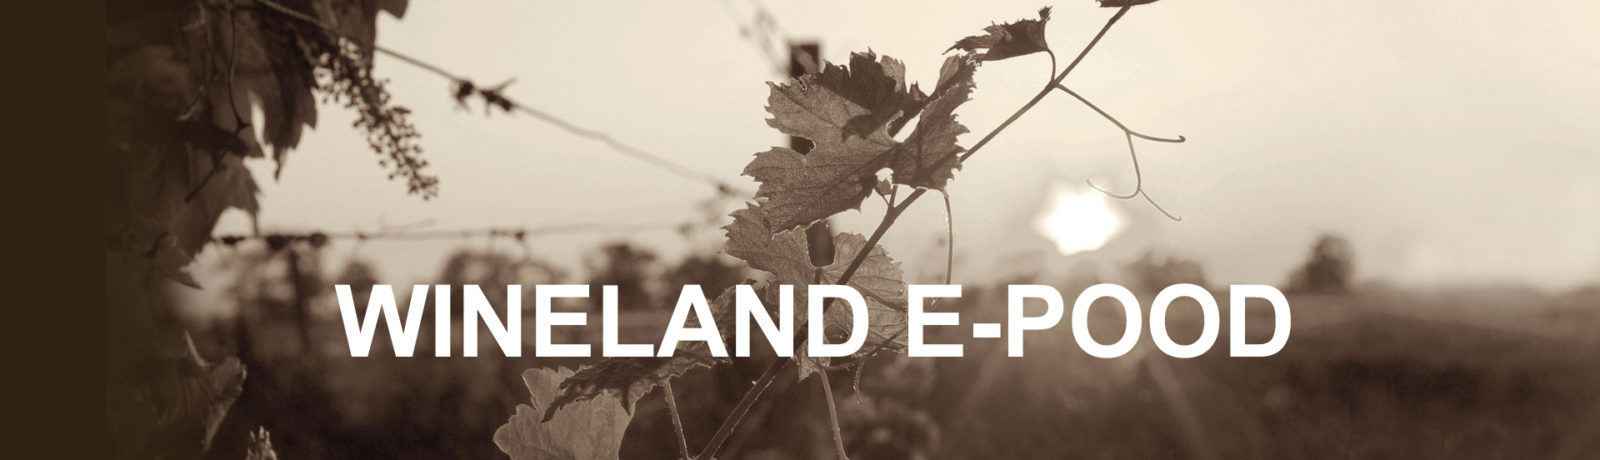 Wineland - Wine Wonderland